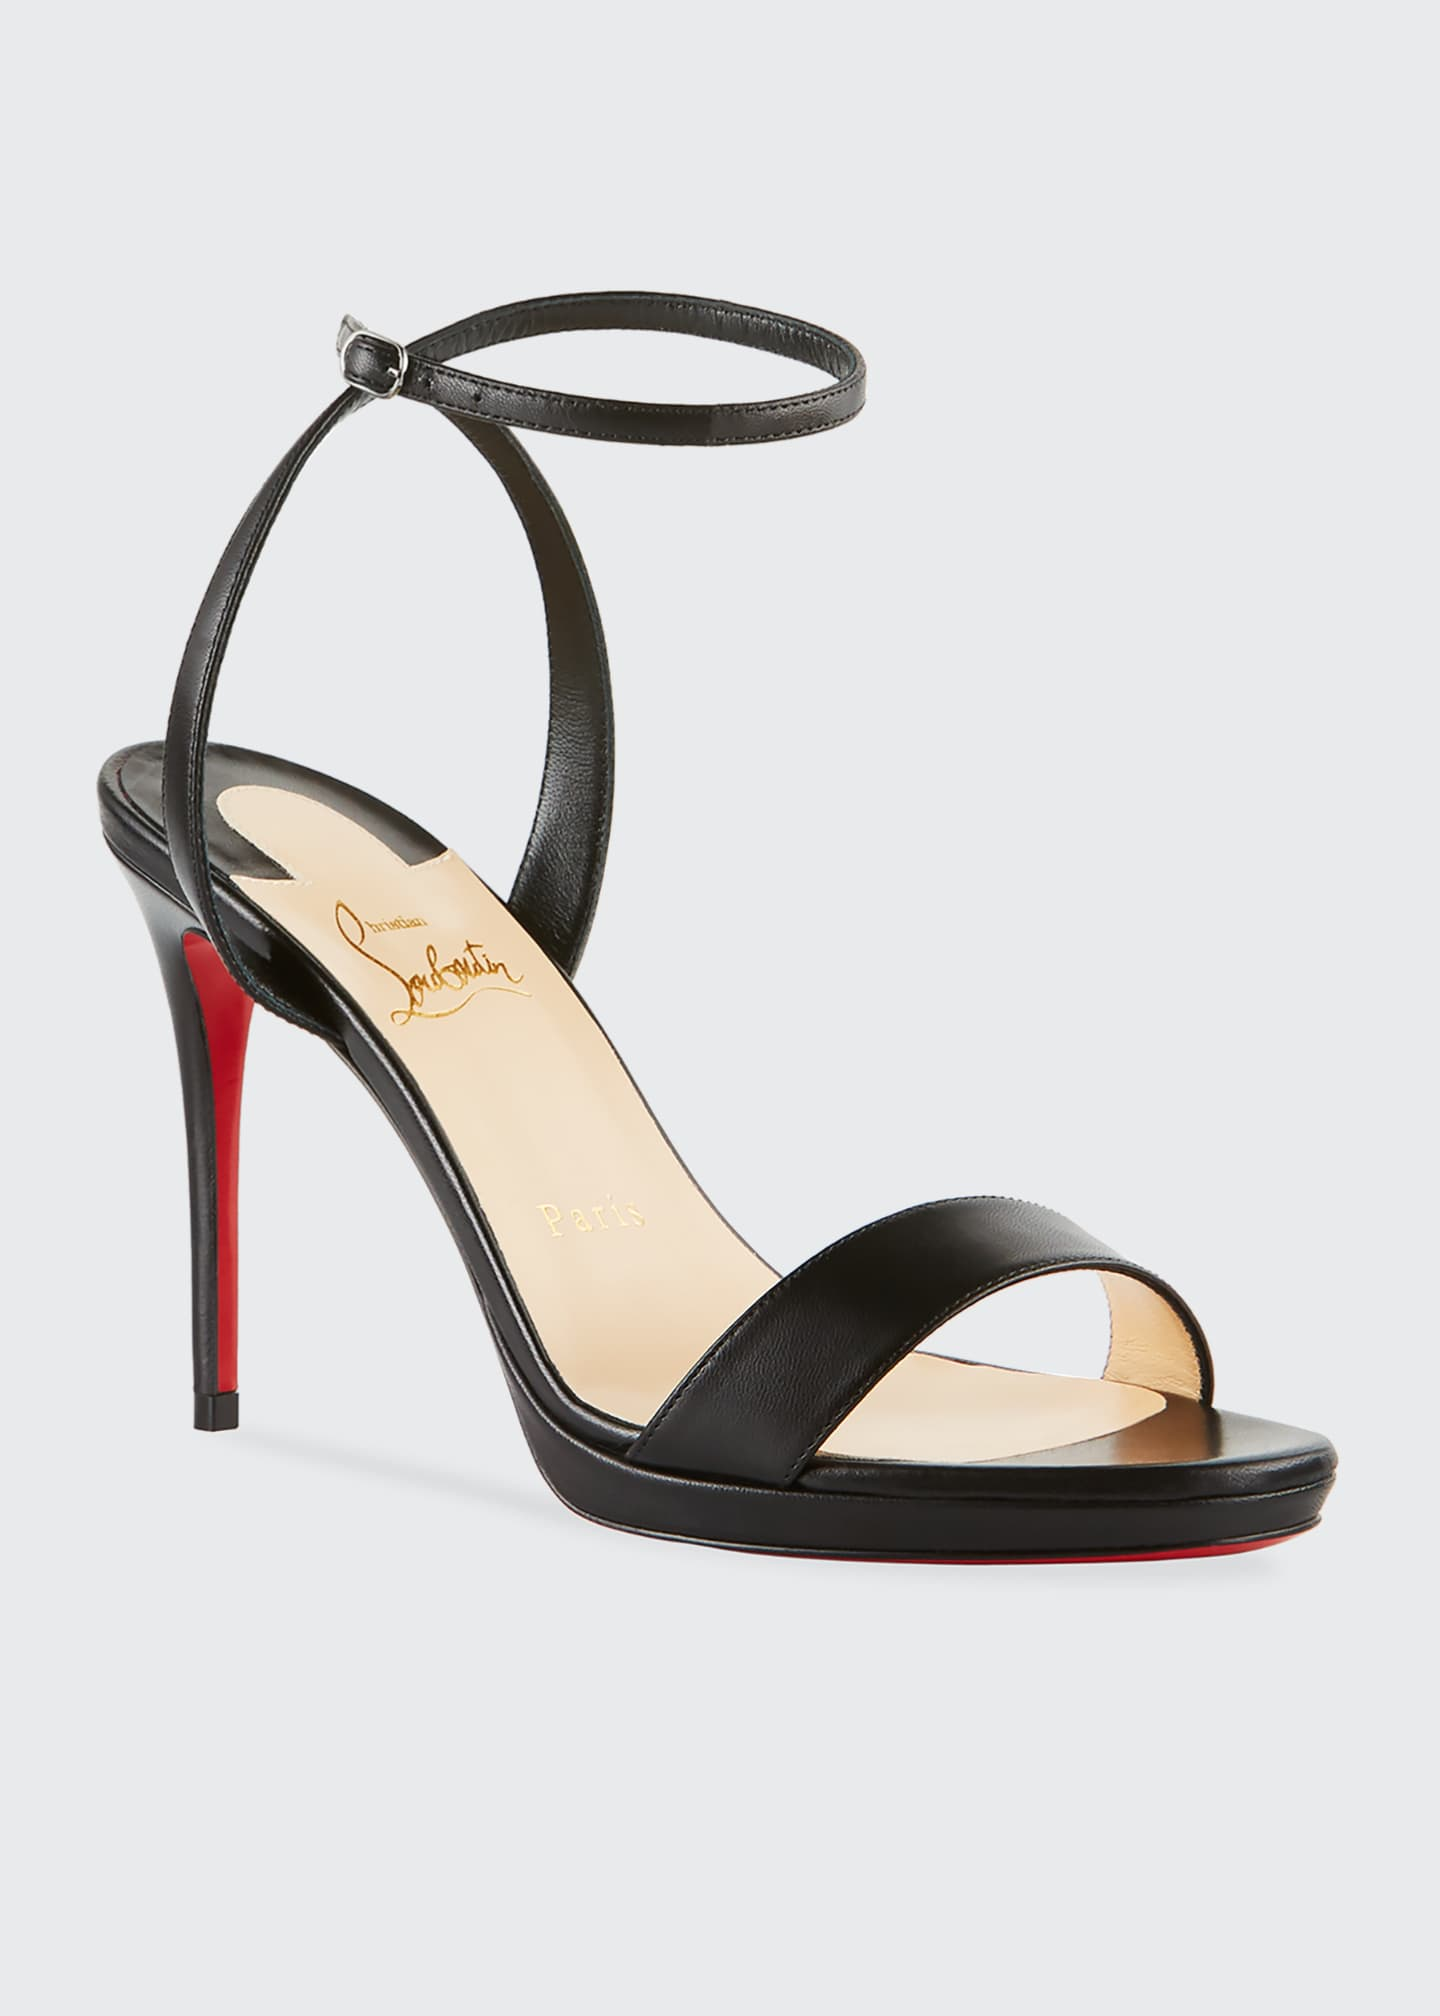 Image 2 of 3: Loubi Queen Red Sole Ankle-Wrap Sandals